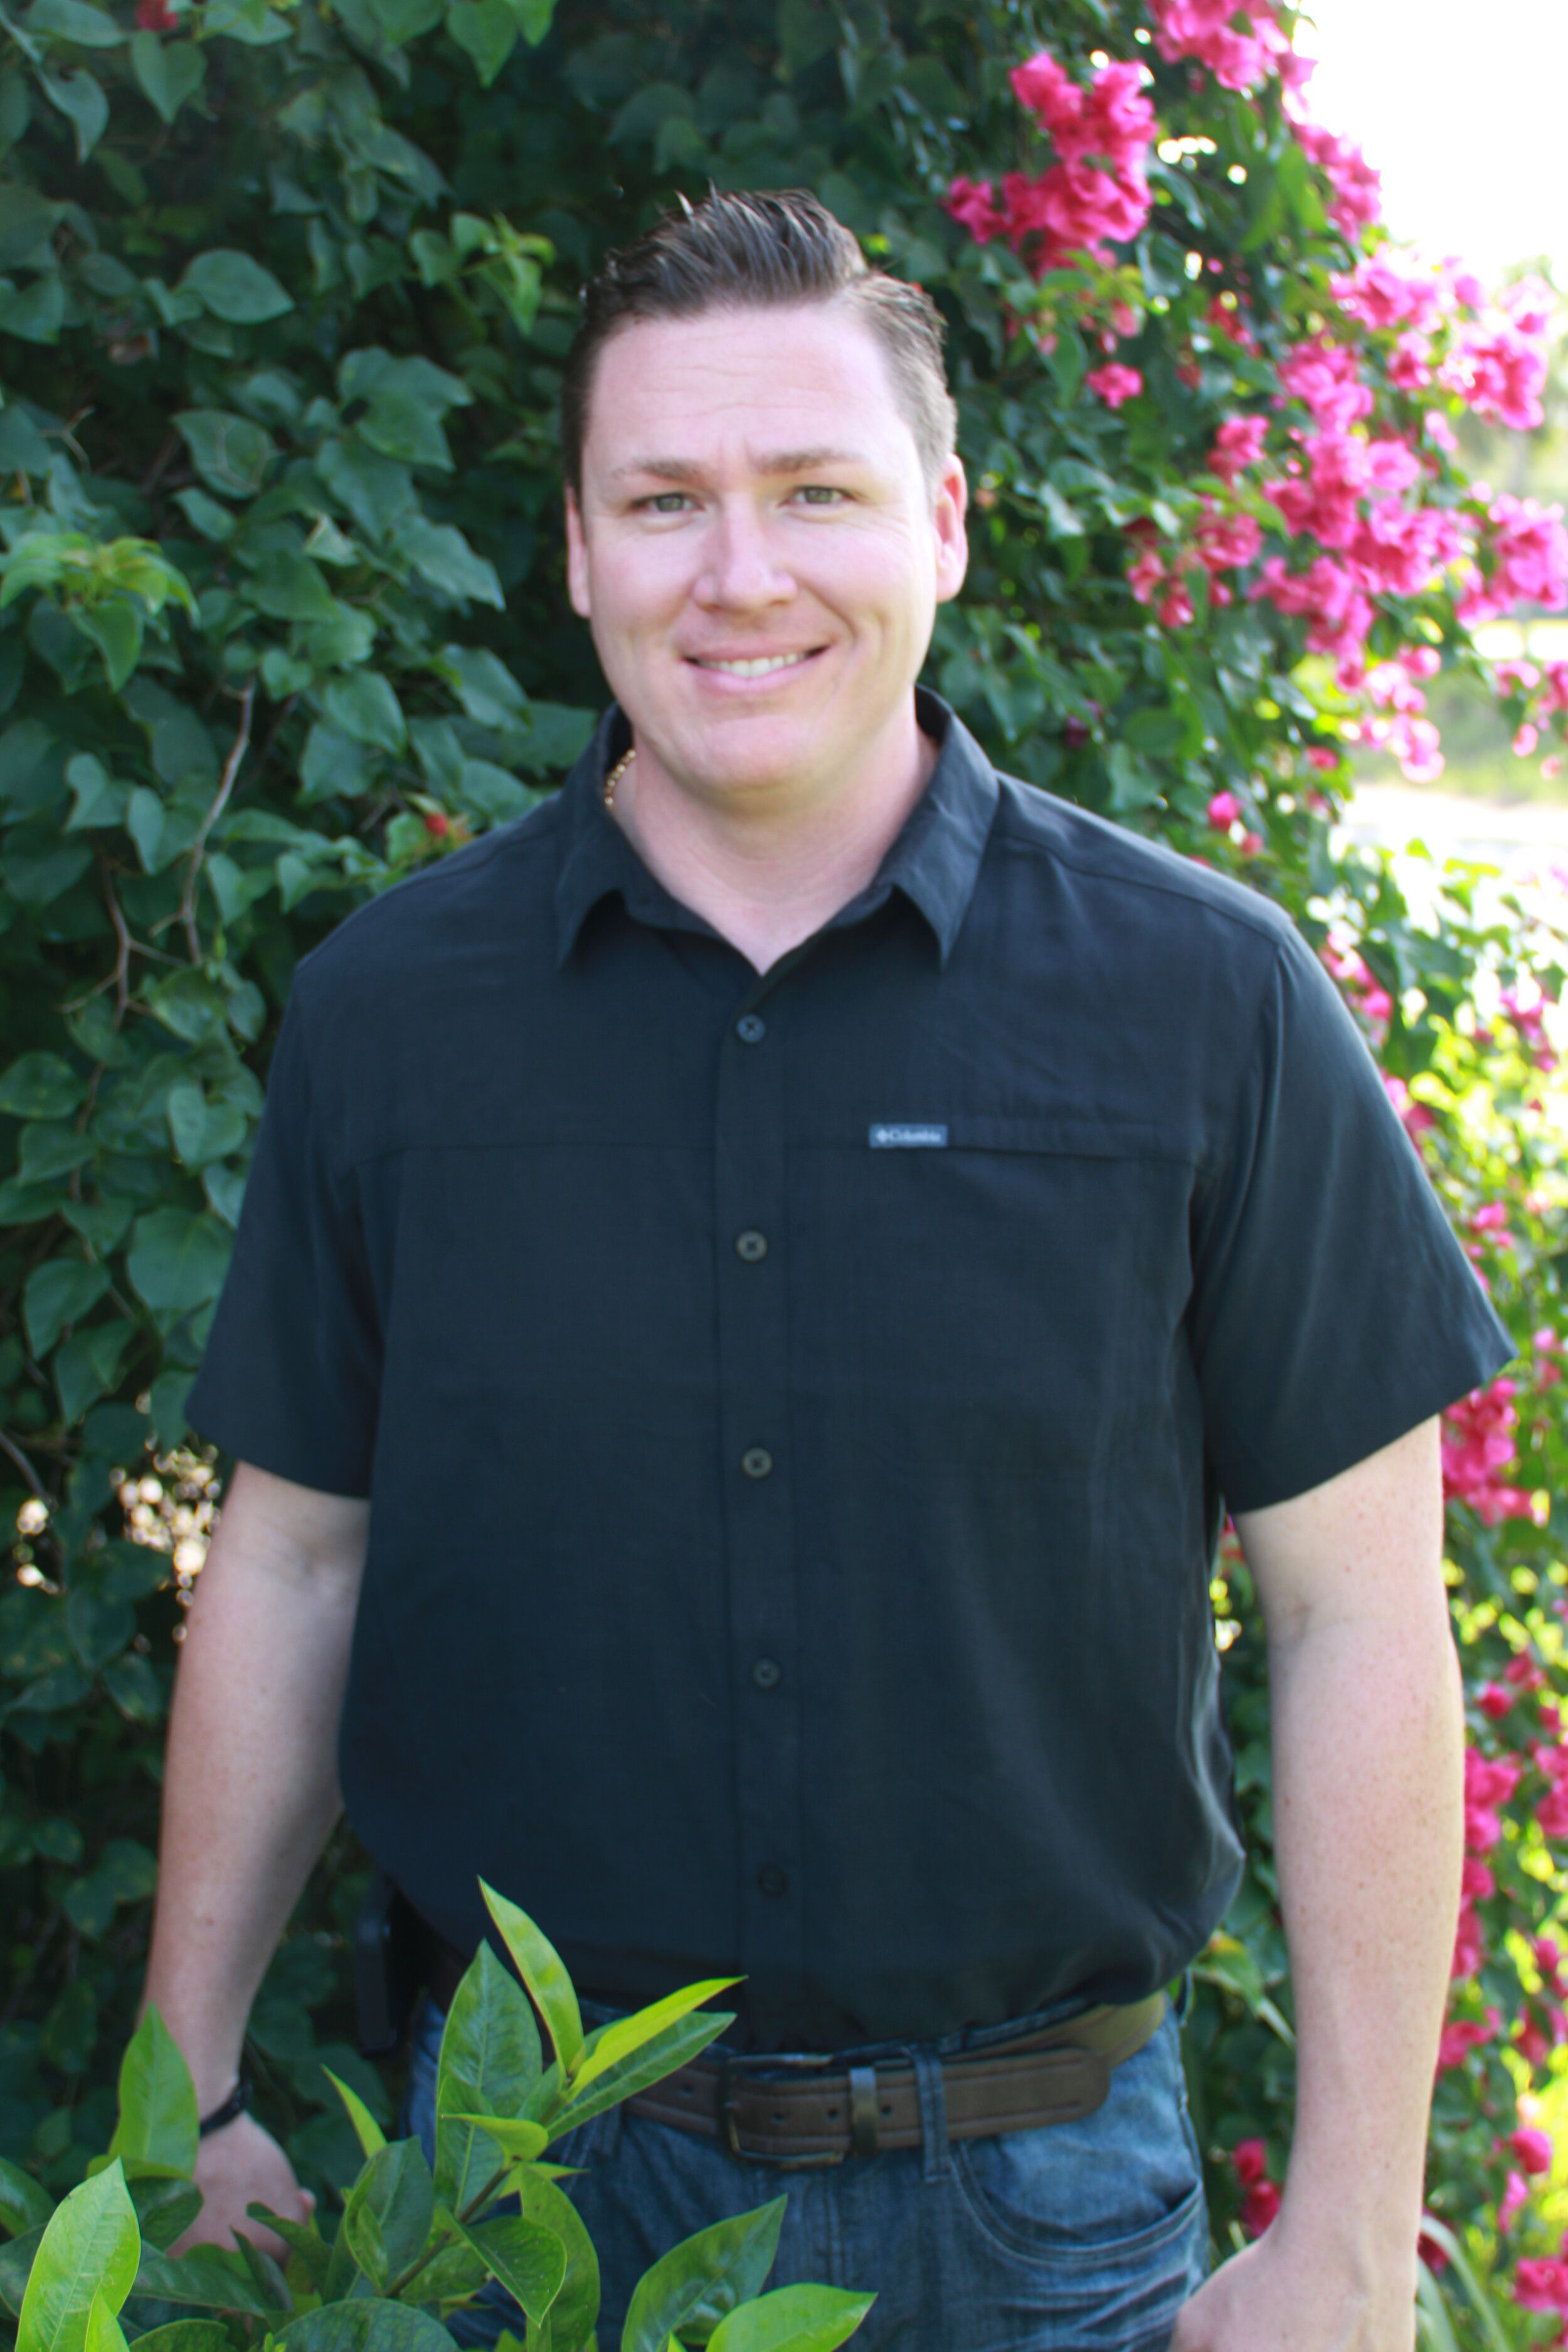 Nate Lombarded is FNGLA certified Continuing education